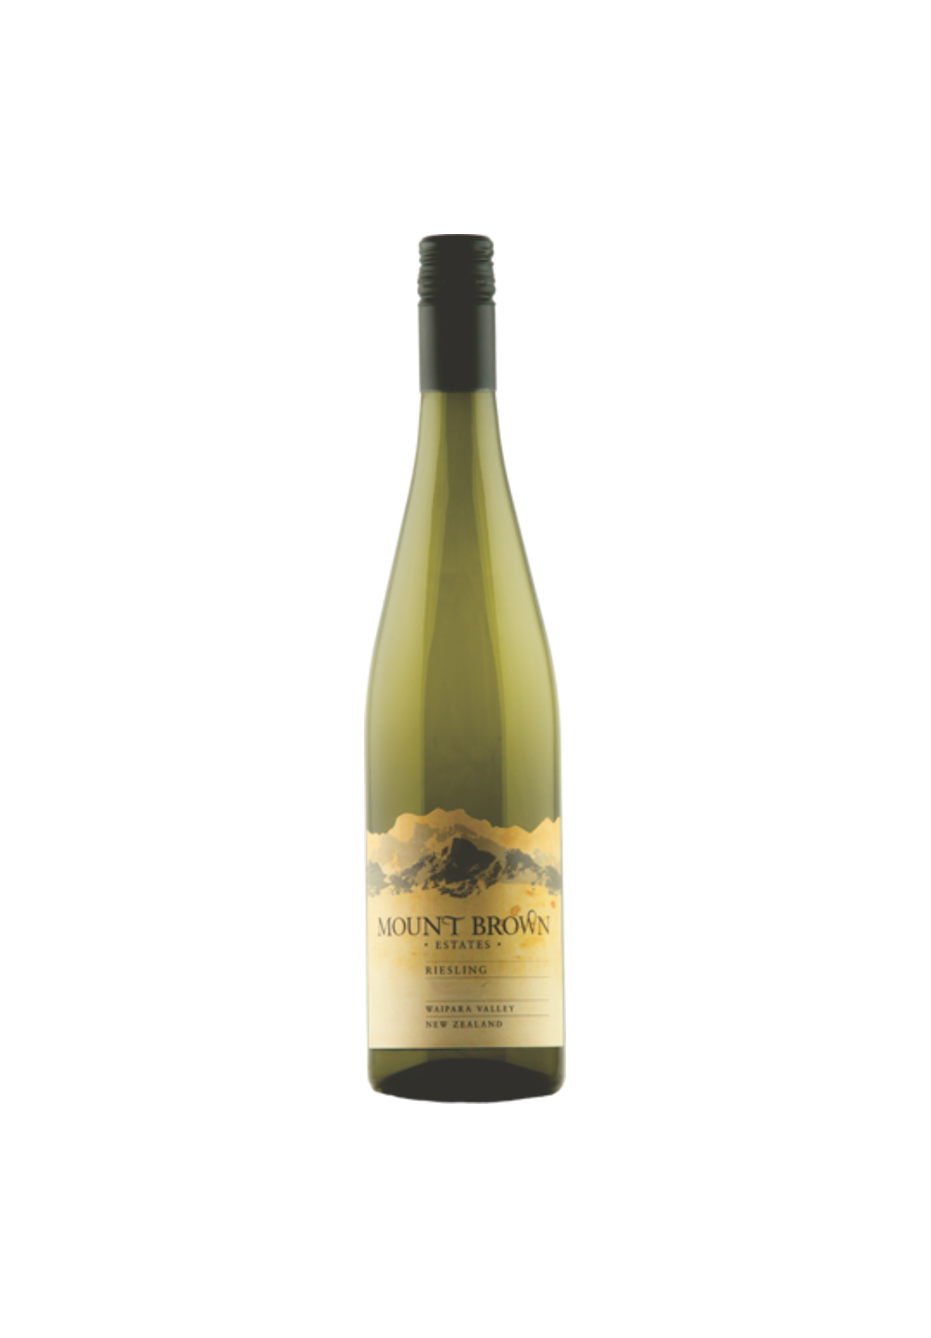 Mount Brown Waipara Dry Riesling 2018